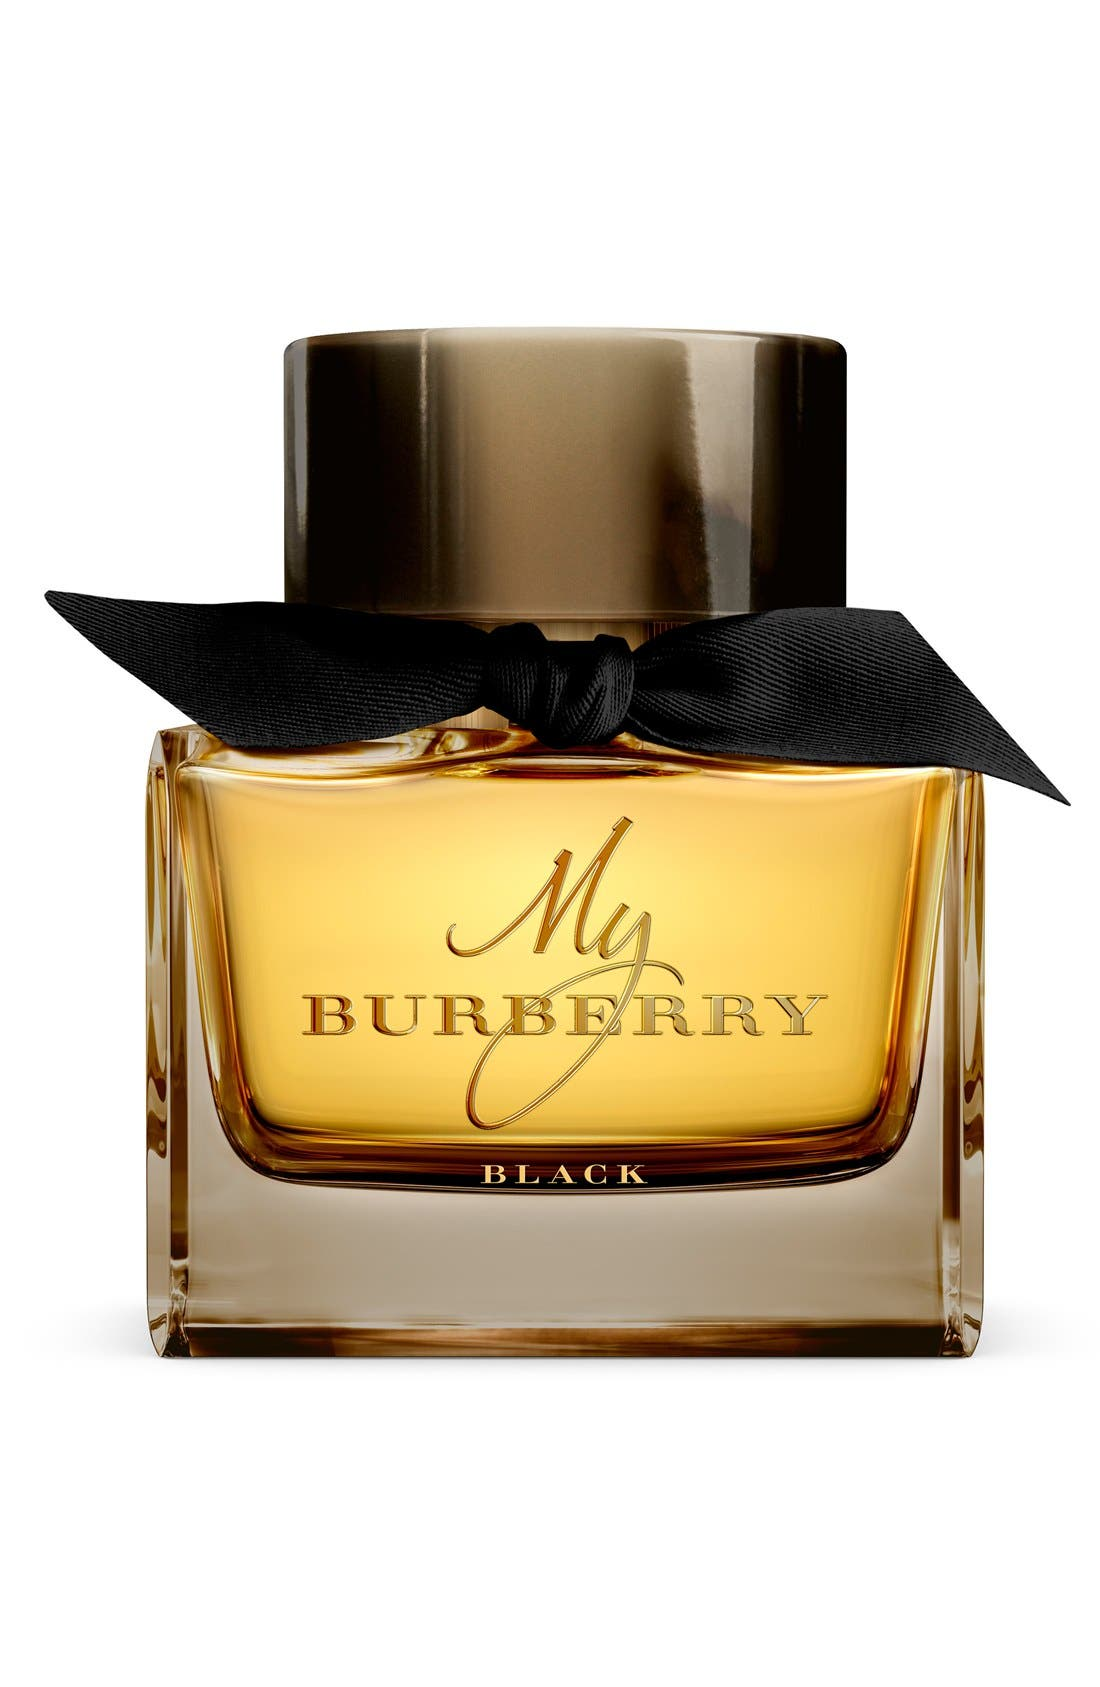 Burberry My Burberry Black Parfum Spray